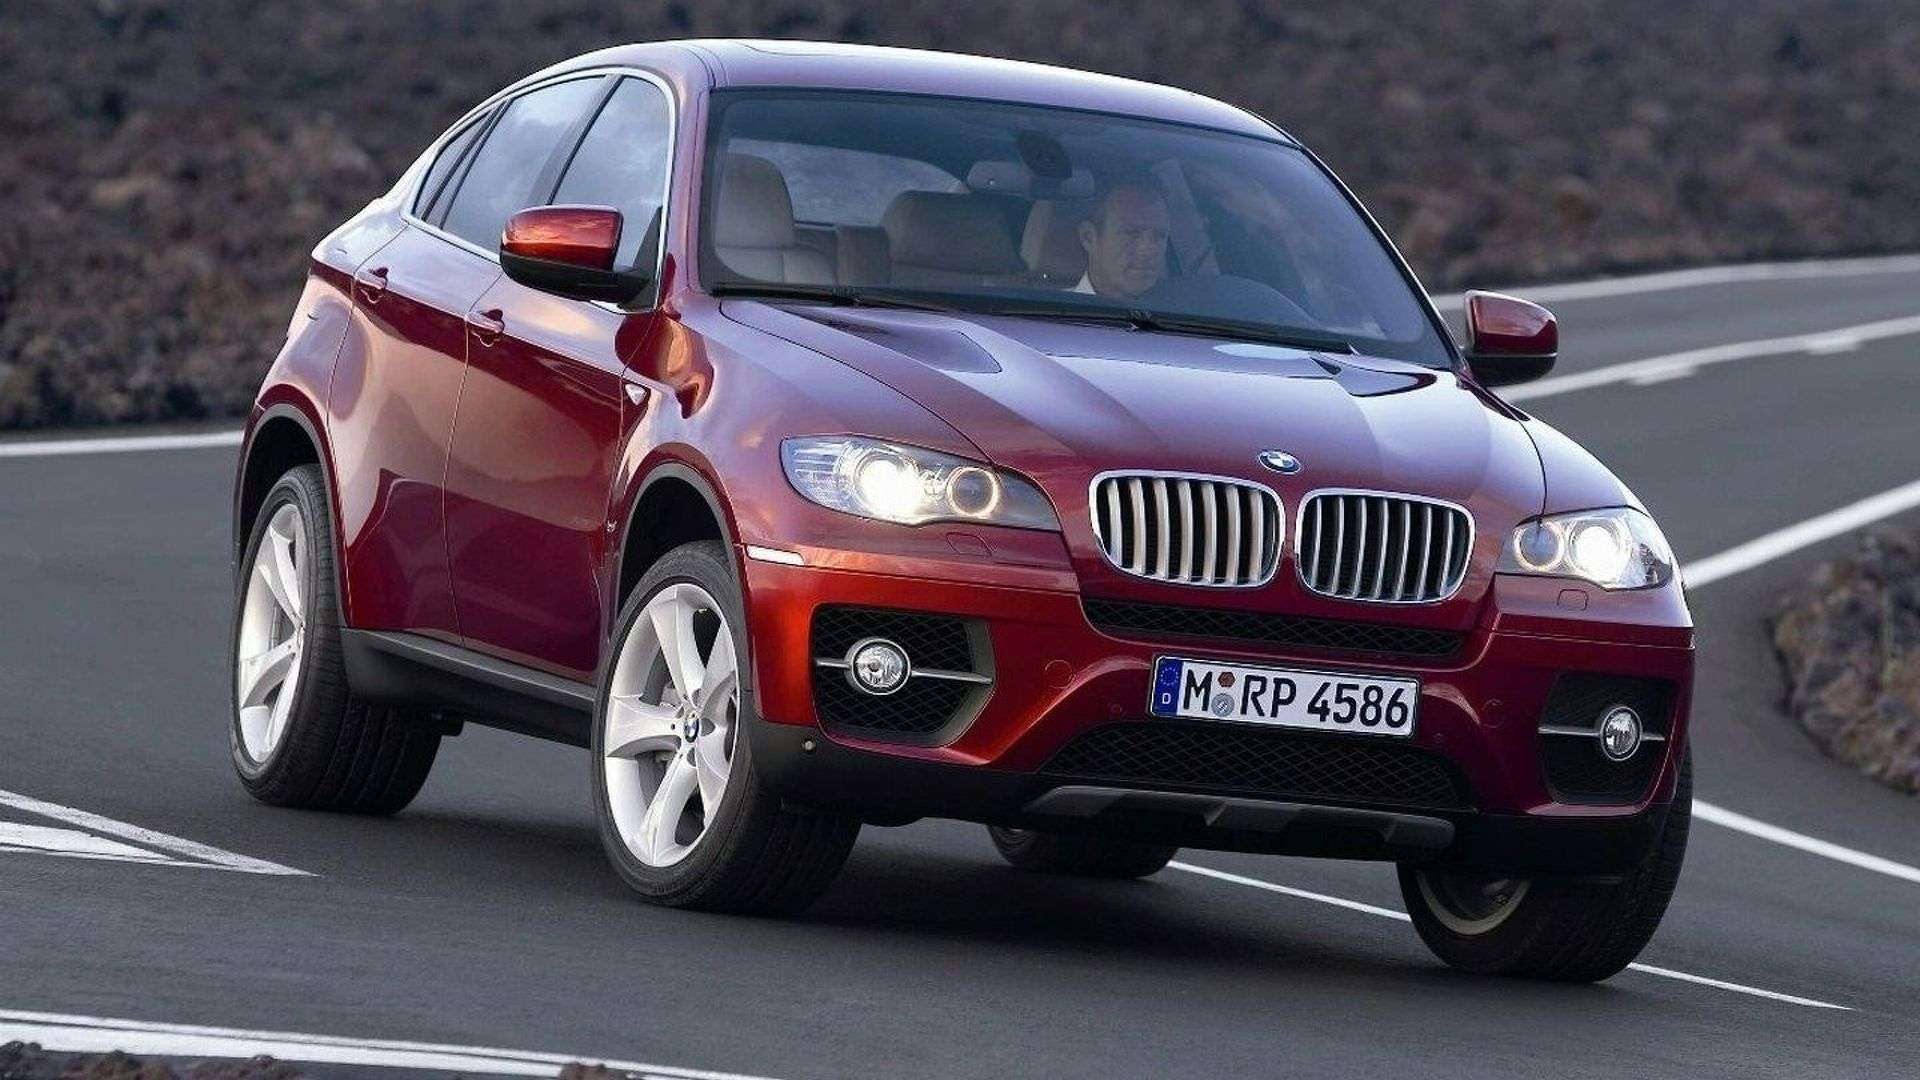 BMW X6 Sports Activity Coupe to Debut at Detroit, New V8 Twin Turbo